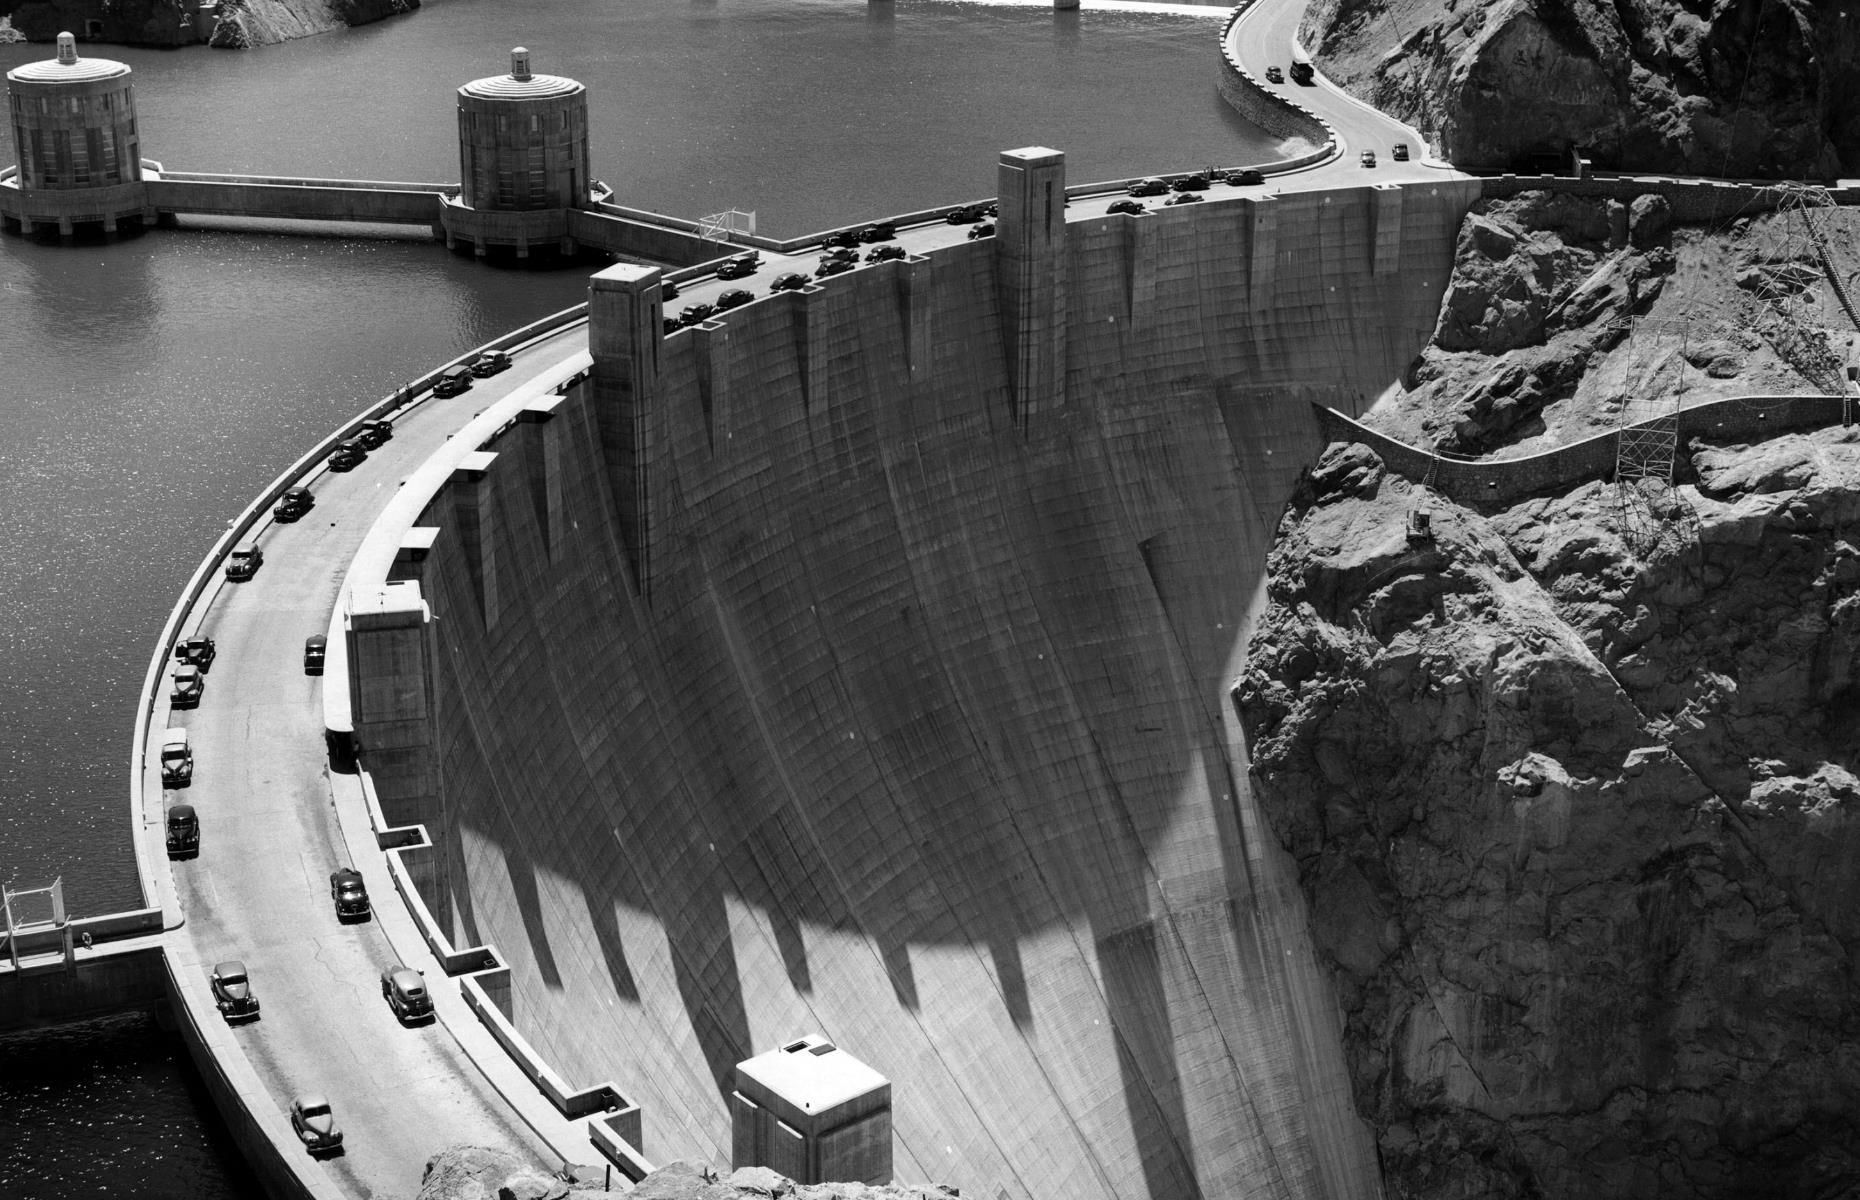 Slide 19 of 48: Built between 1931 and 1936, during the Great Depression, to tame the Colorado River, the mighty Boulder Dam on the Arizona-Nevada border was the largest in the world. Its reservoir Lake Mead remains the largest in the world. It opened for tours in 1937 and became a popular tourist destination. It was officially renamed the Hoover Dam by the then-president, Herbert Hoover, in 1947. It was designated a National Historic Landmark in 1985 and a new visitor center was built in 1995.